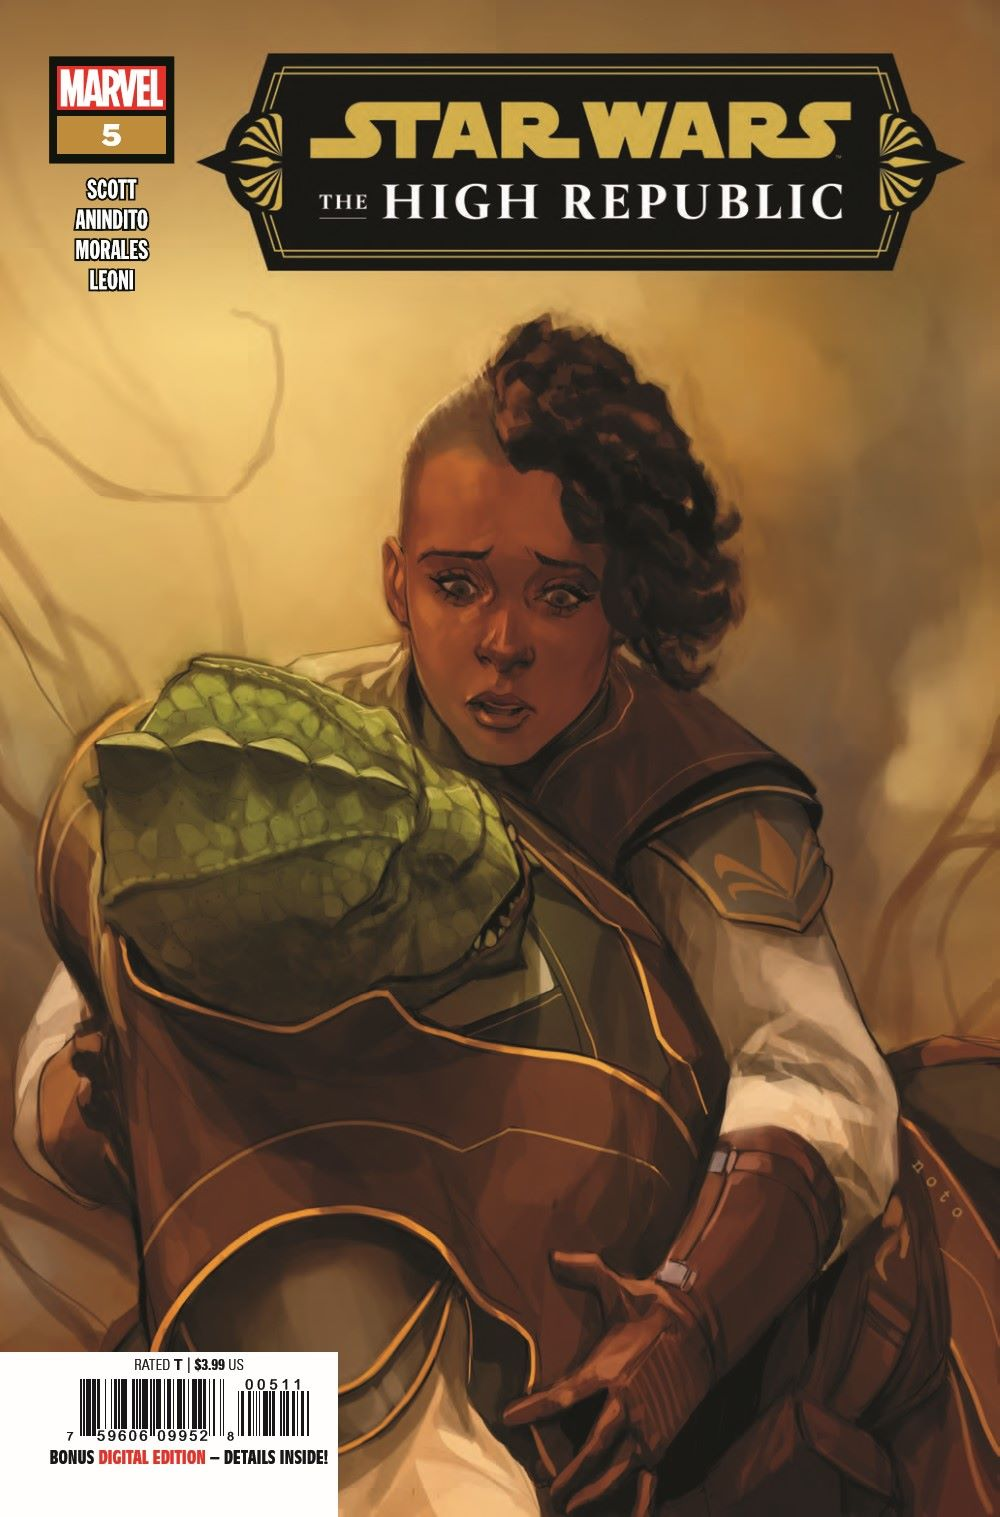 STWHIGHREP2021005_Preview-1 ComicList Previews: STAR WARS THE HIGH REPUBLIC #5